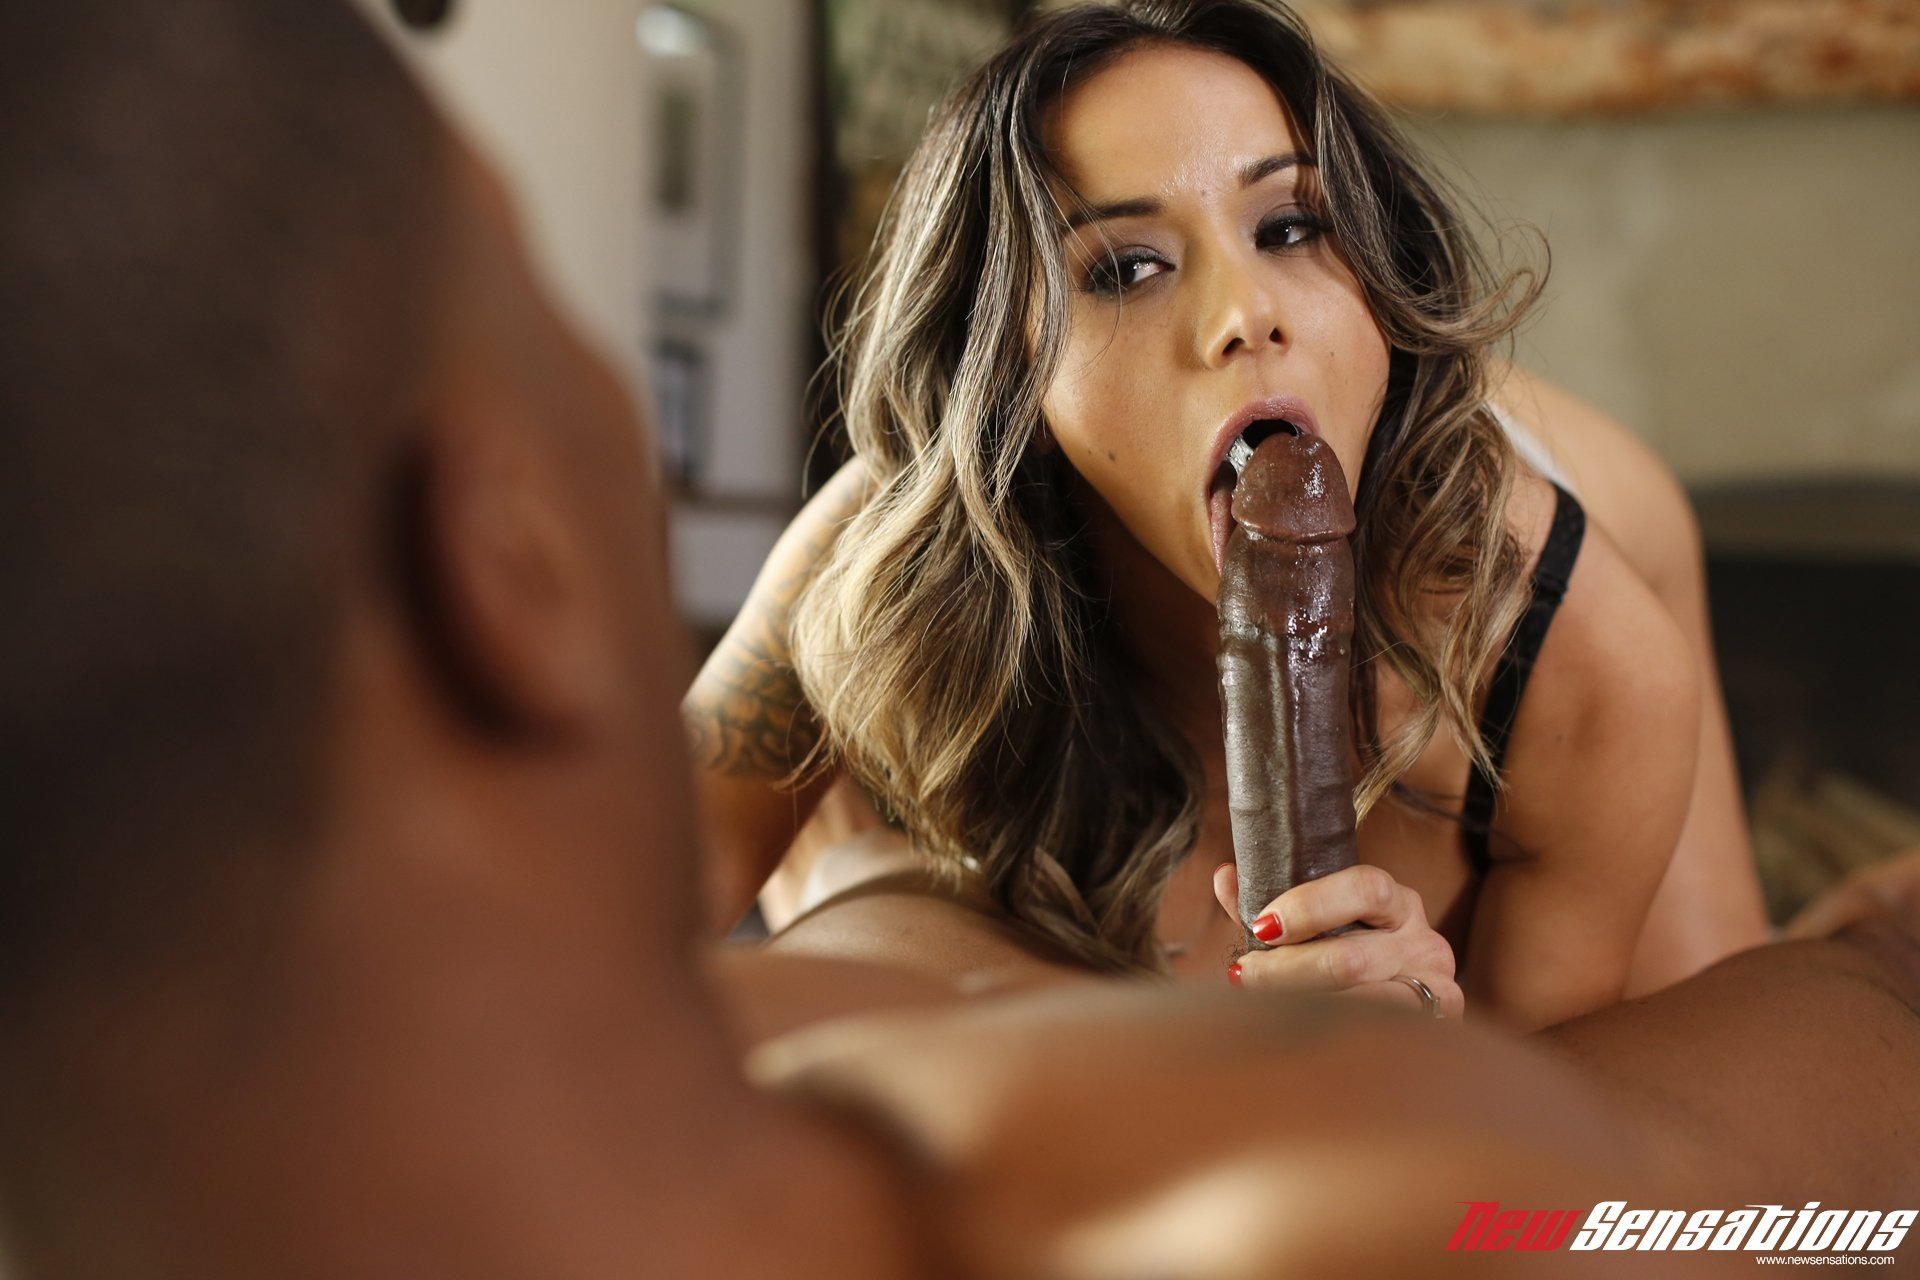 interracial 08 hd